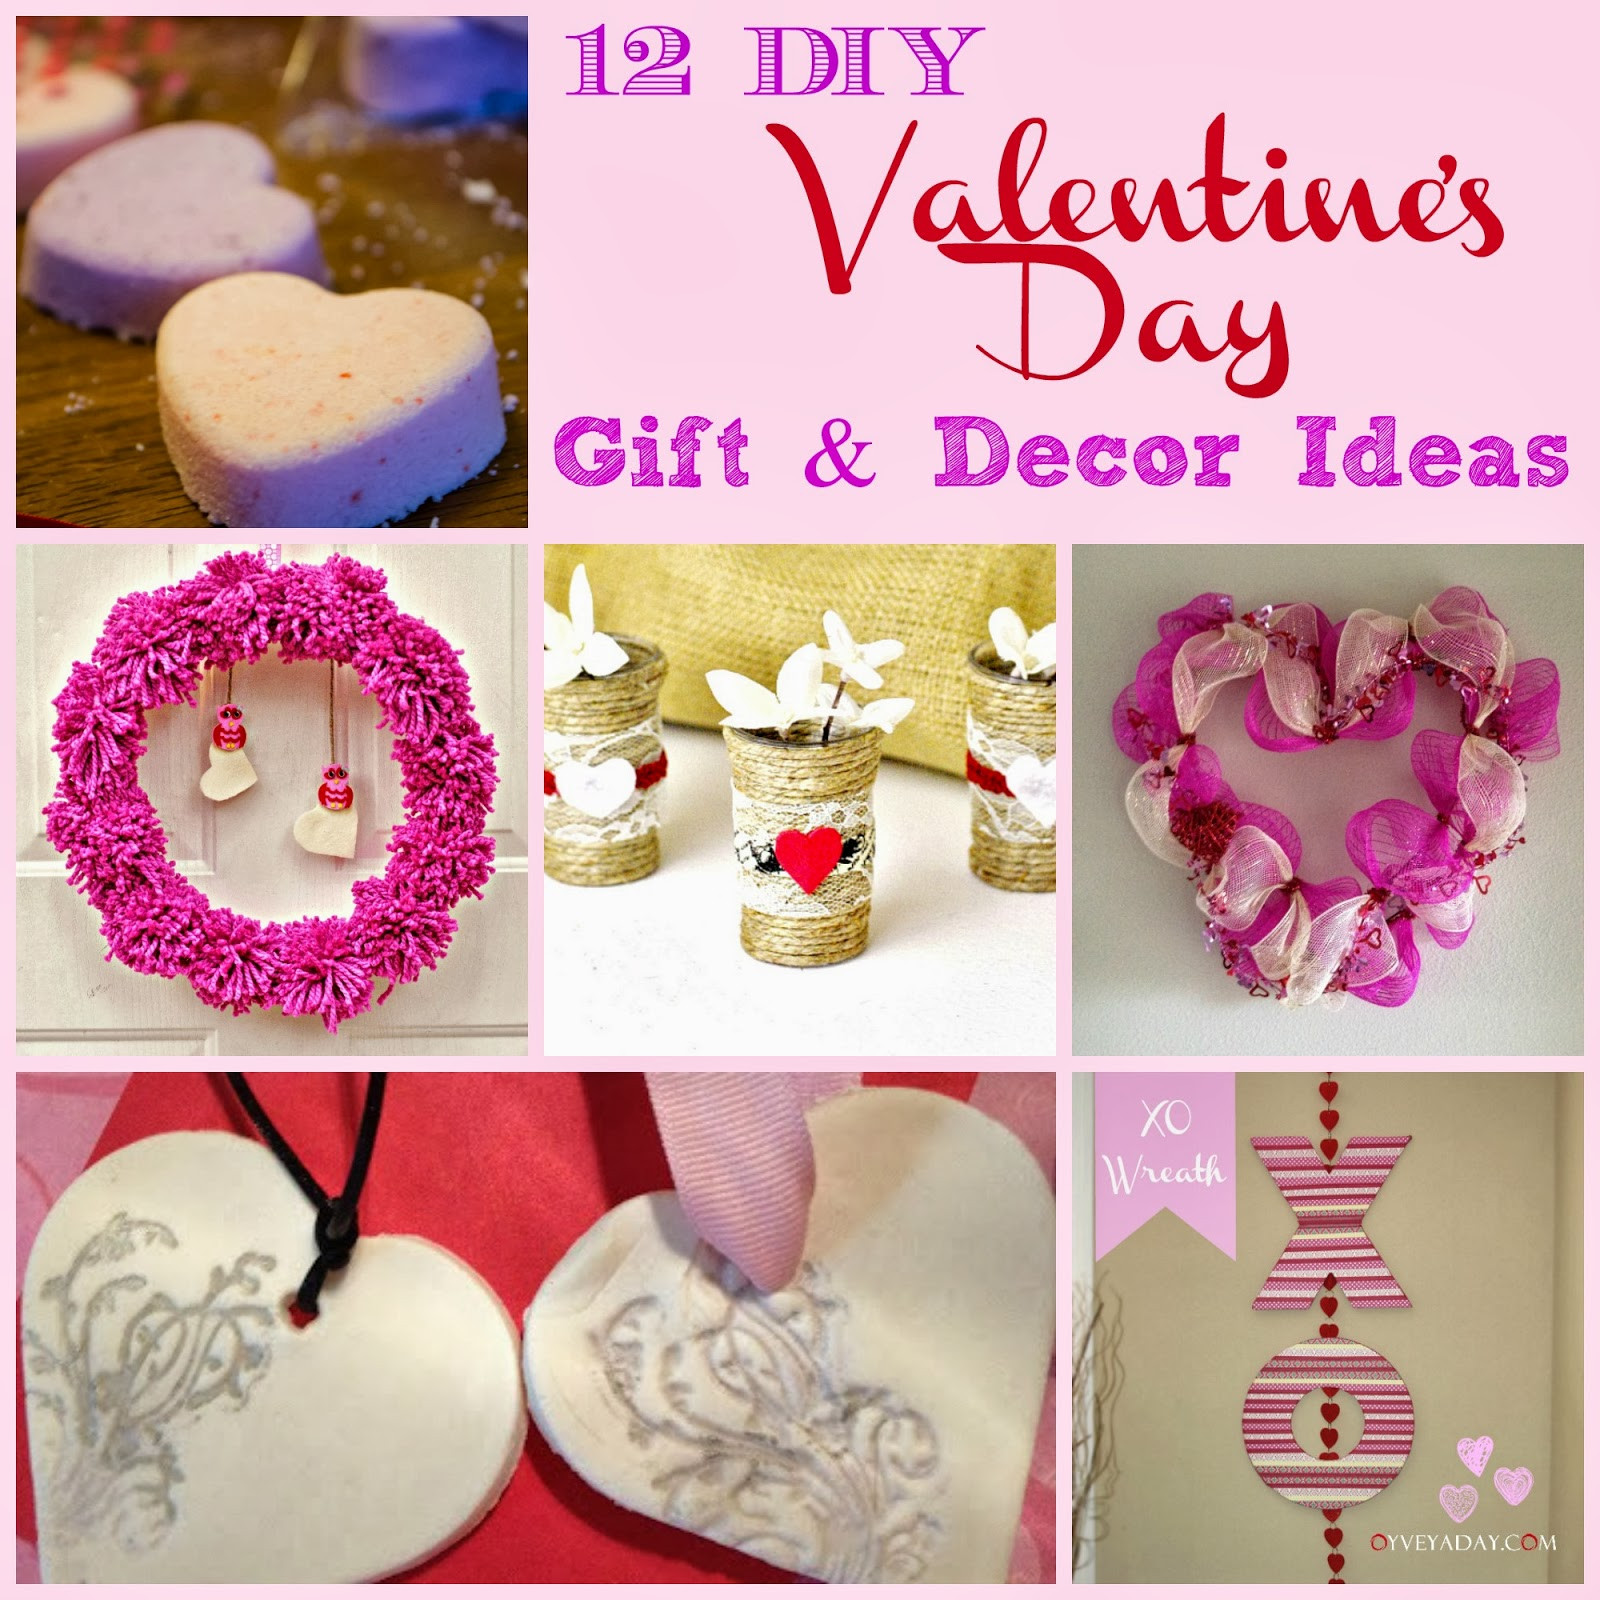 Best ideas about DIY Valentine Gifts . Save or Pin 12 DIY Valentine s Day Gift & Decor Ideas Outnumbered 3 to 1 Now.